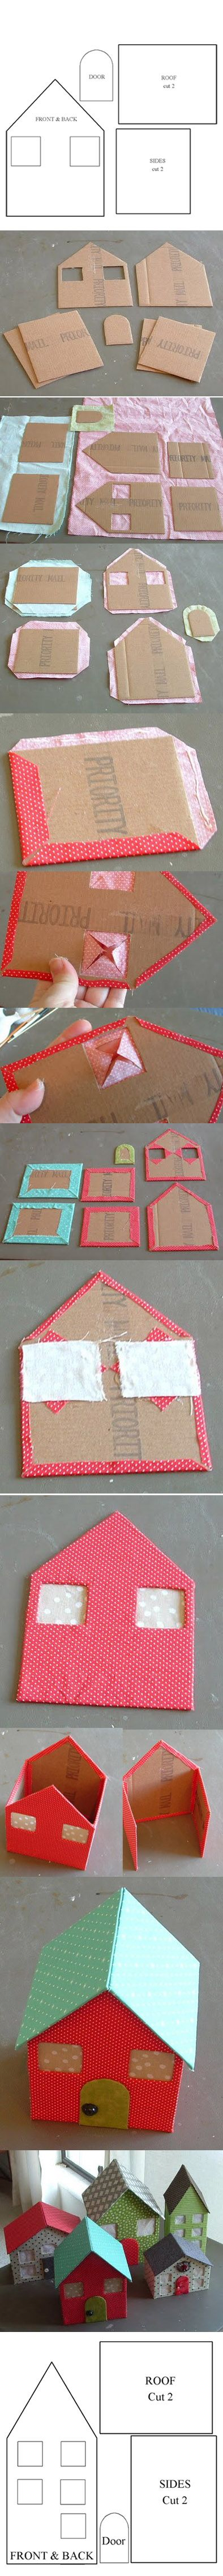 How To: Make Your Own Doll House From Cardboard & Fabric #kids #kidscrafts #kidsactivities